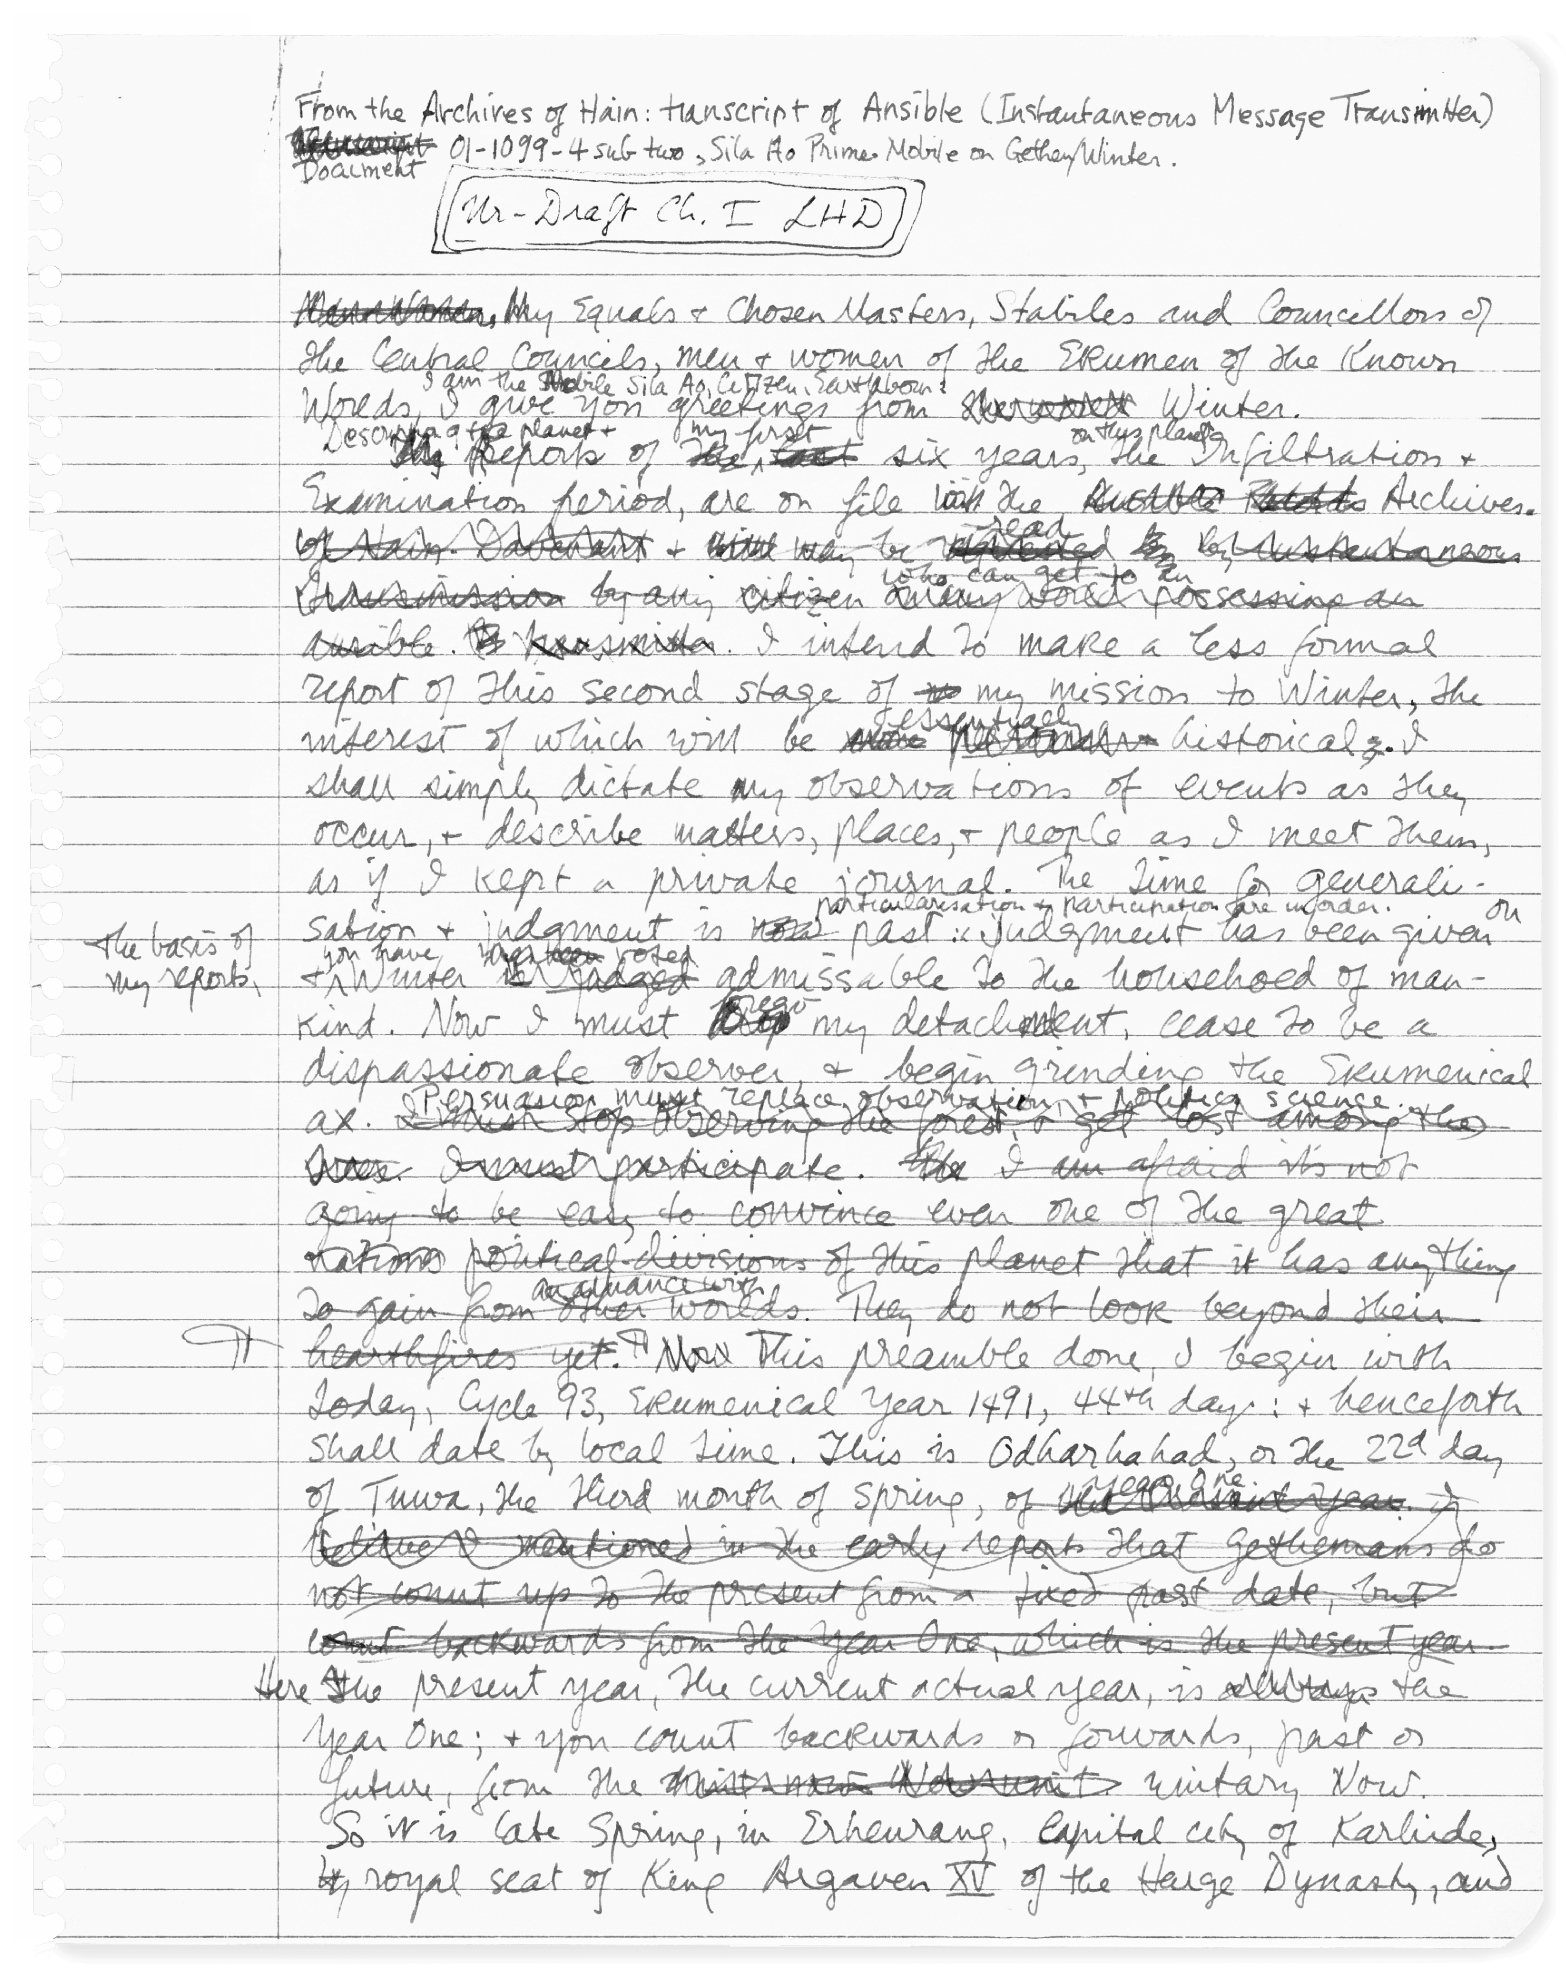 paris review ursula k le guin the art of fiction no  view manuscript